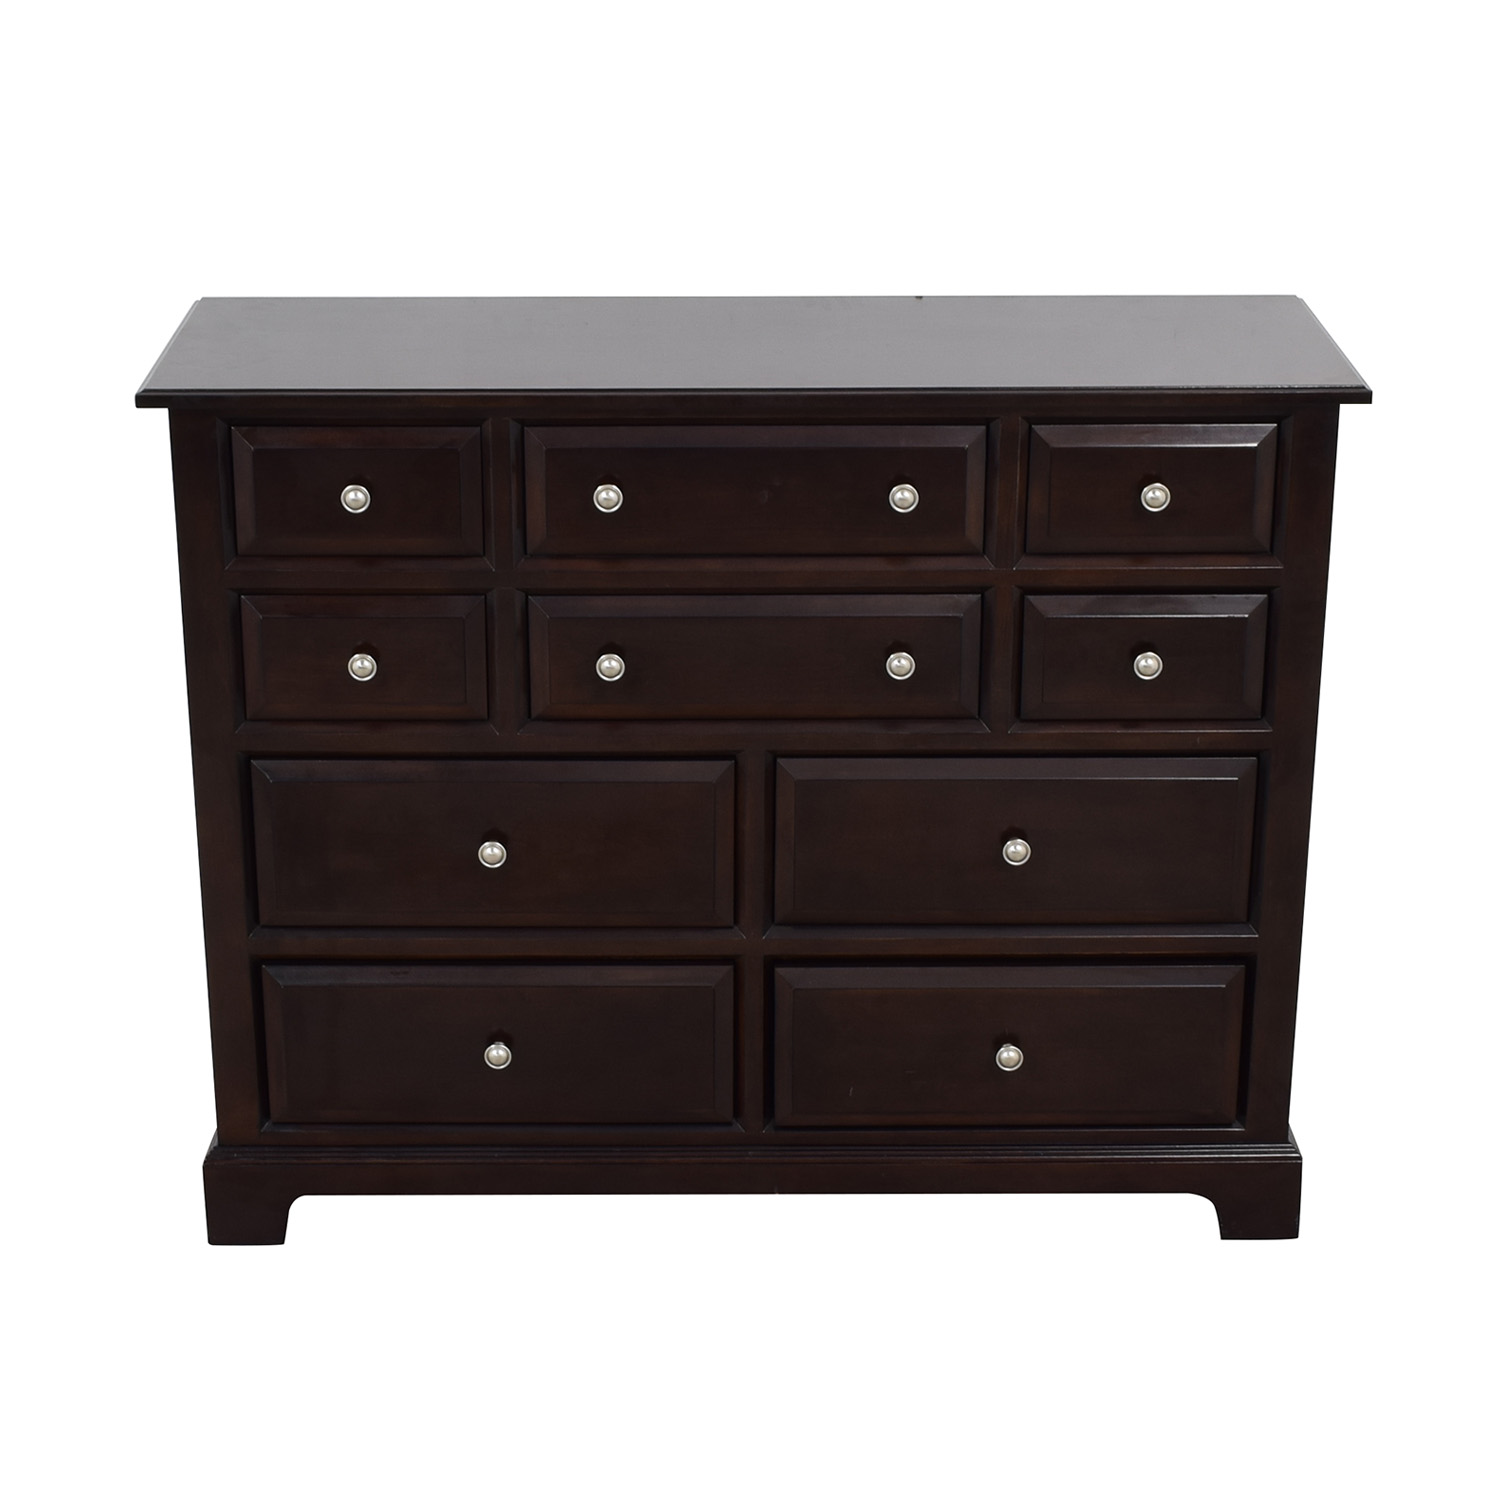 Raymour & Flanigan Raymour & Flanigan Wood Ten-Drawer Dresser used